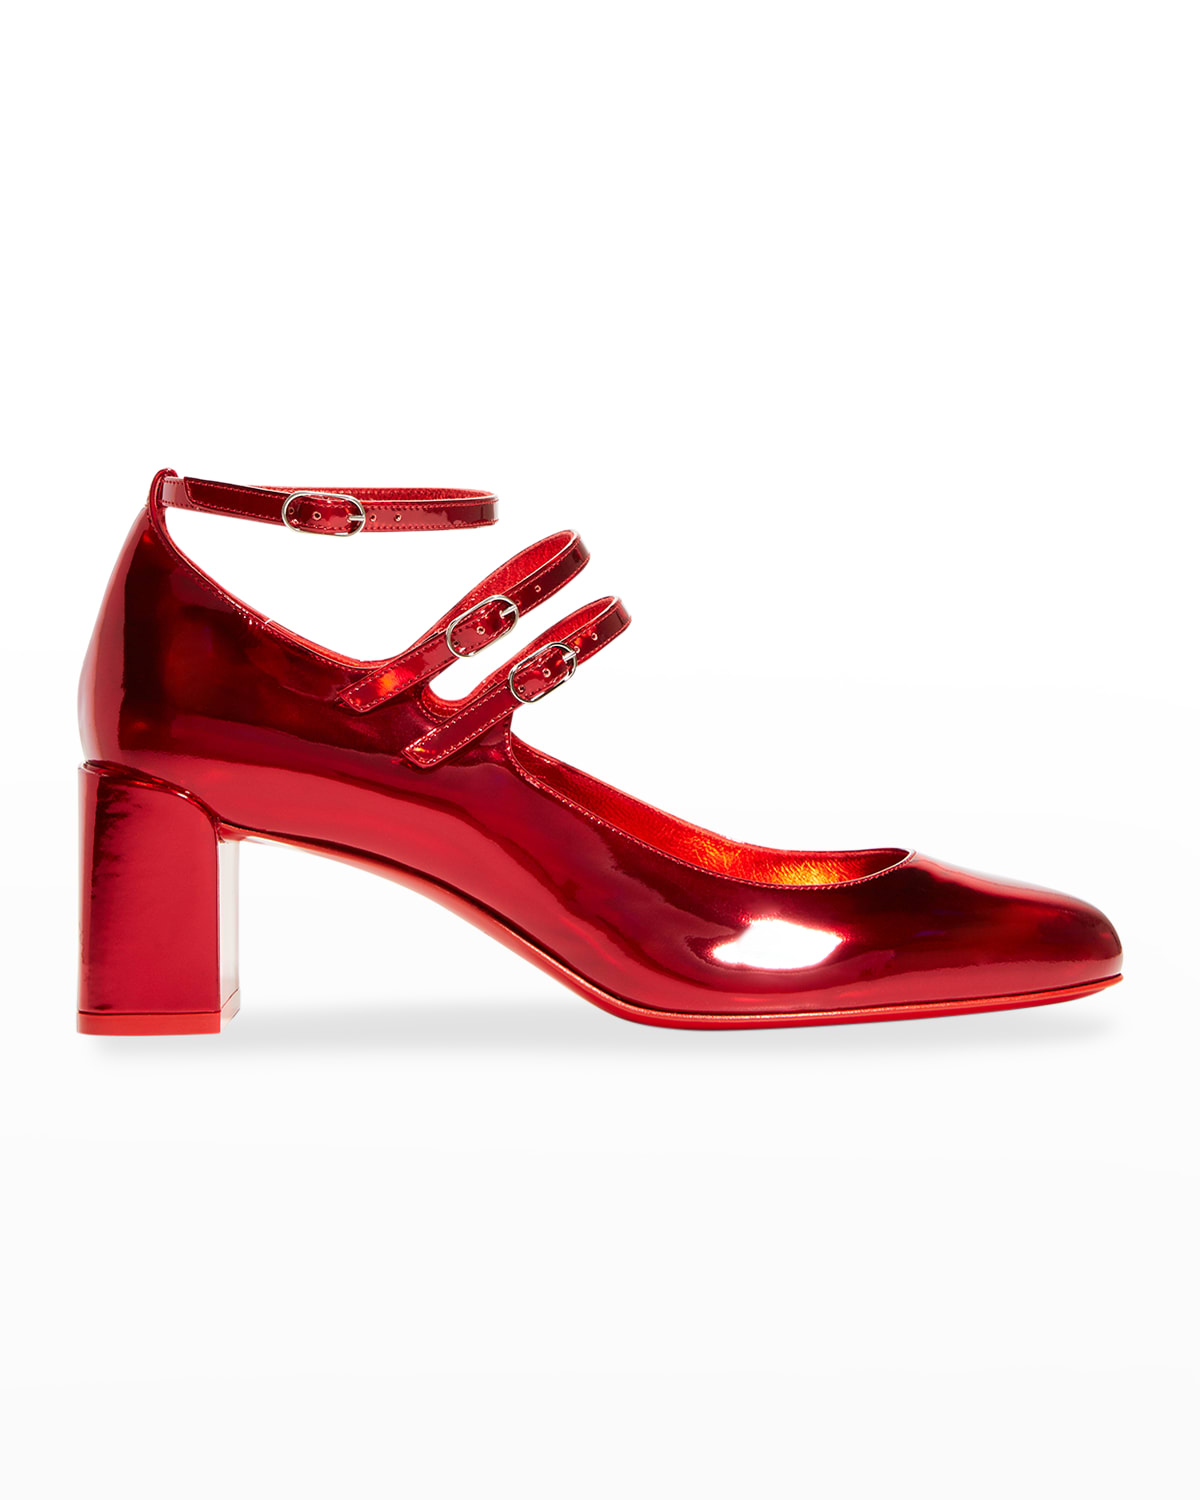 Vernica Iridescent Mary Jane Red Sole Pumps